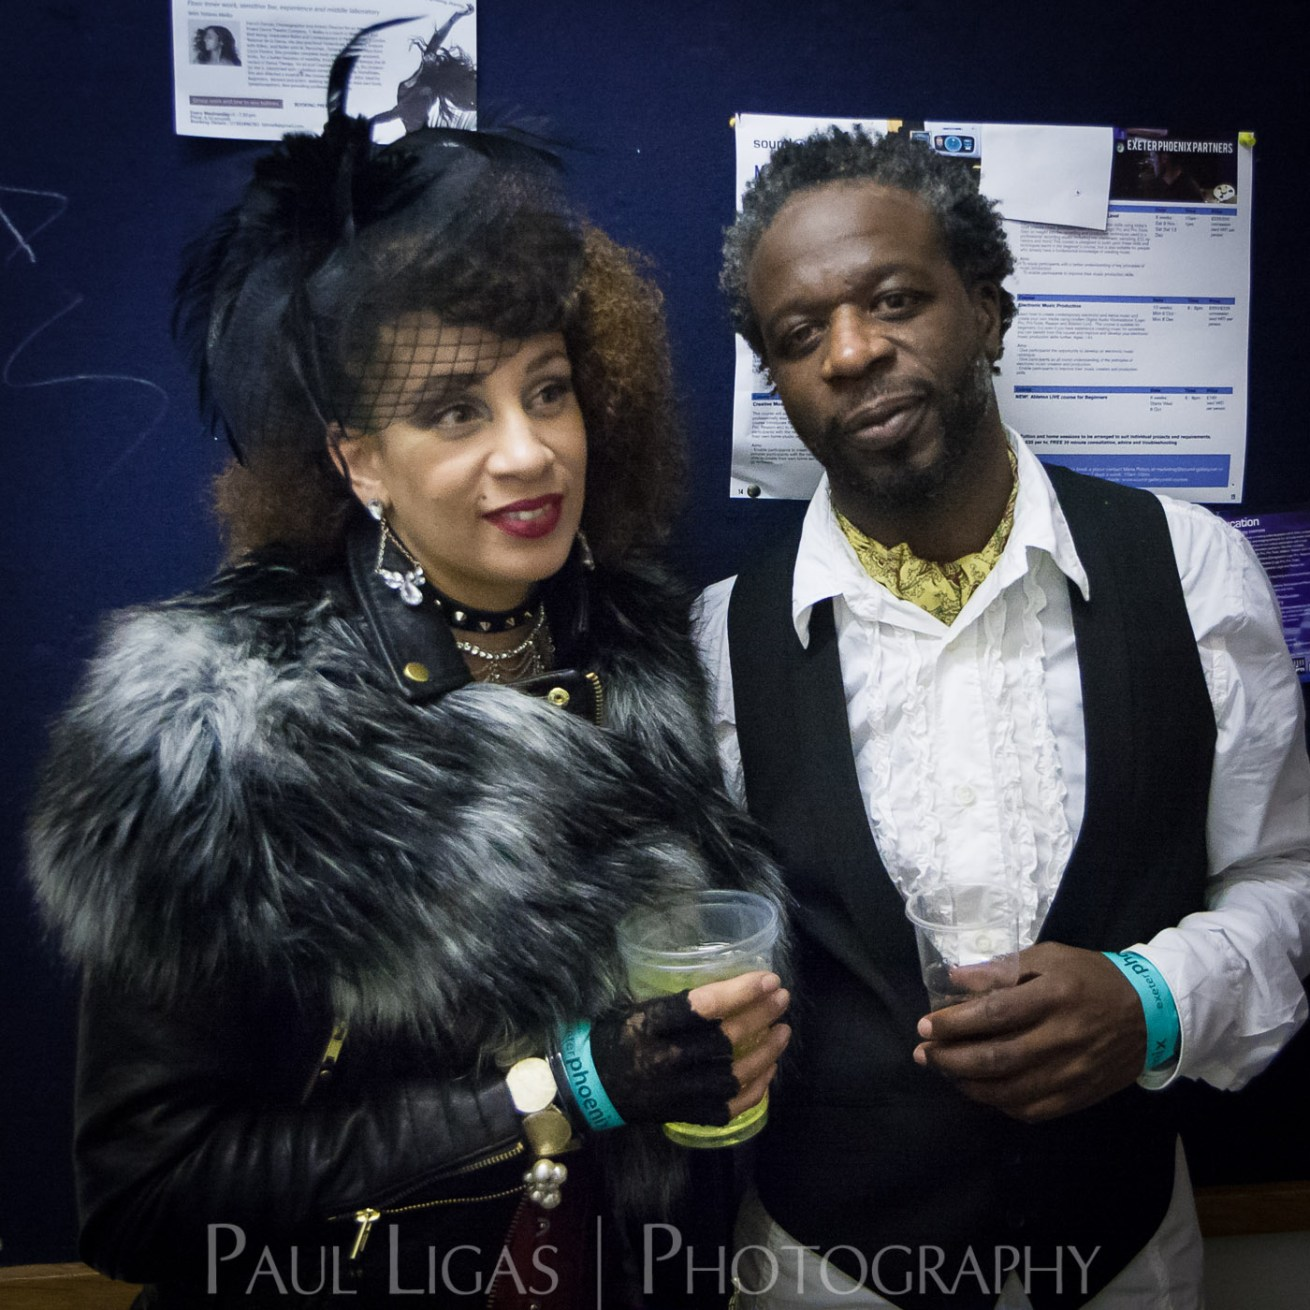 Steampunk Yule Ball 2014, event photographer photography Herefordshire 6479